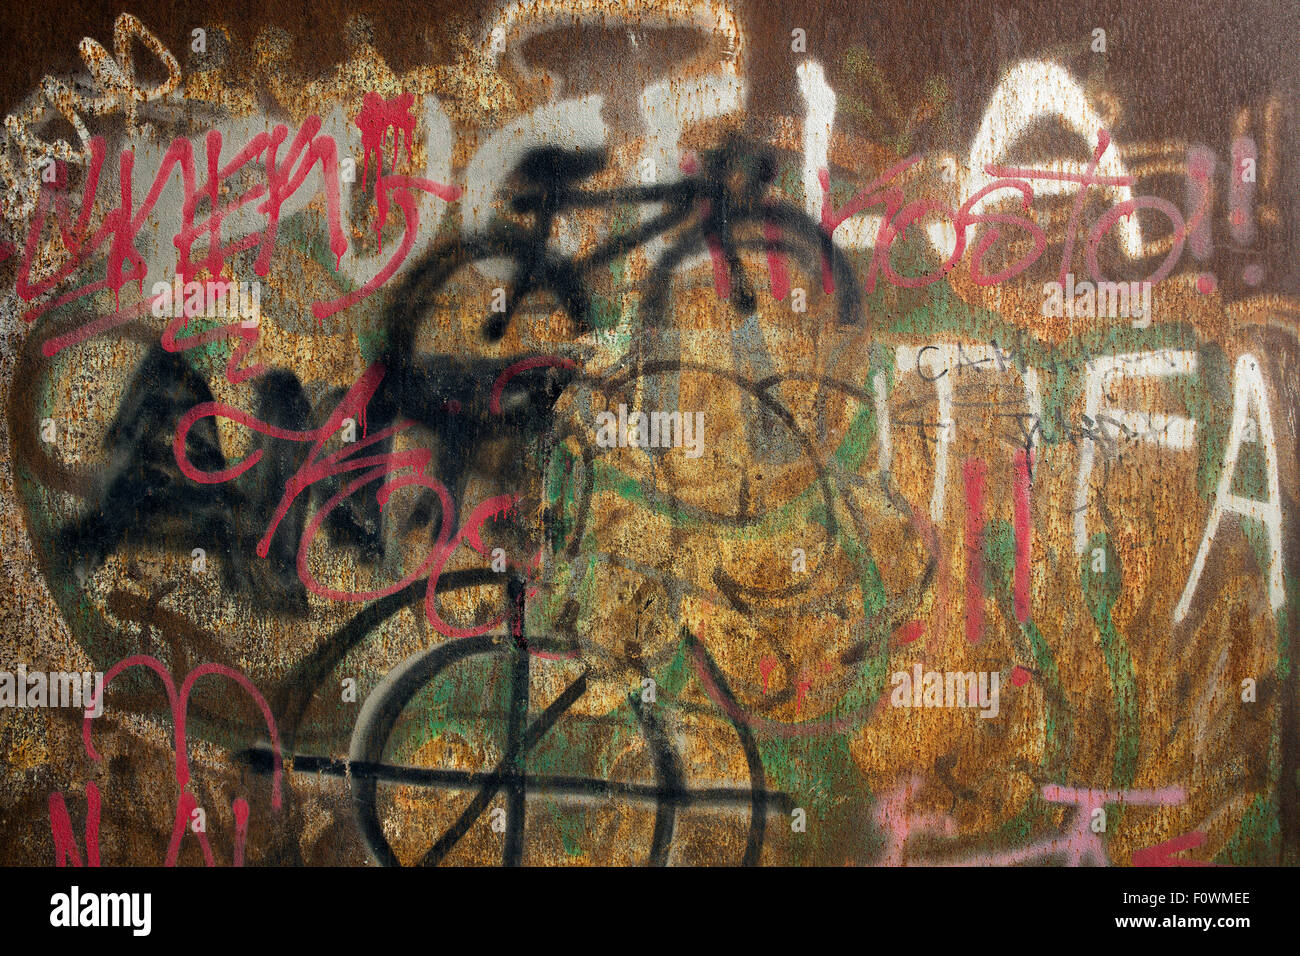 painted on a wall of iron - Stock Image